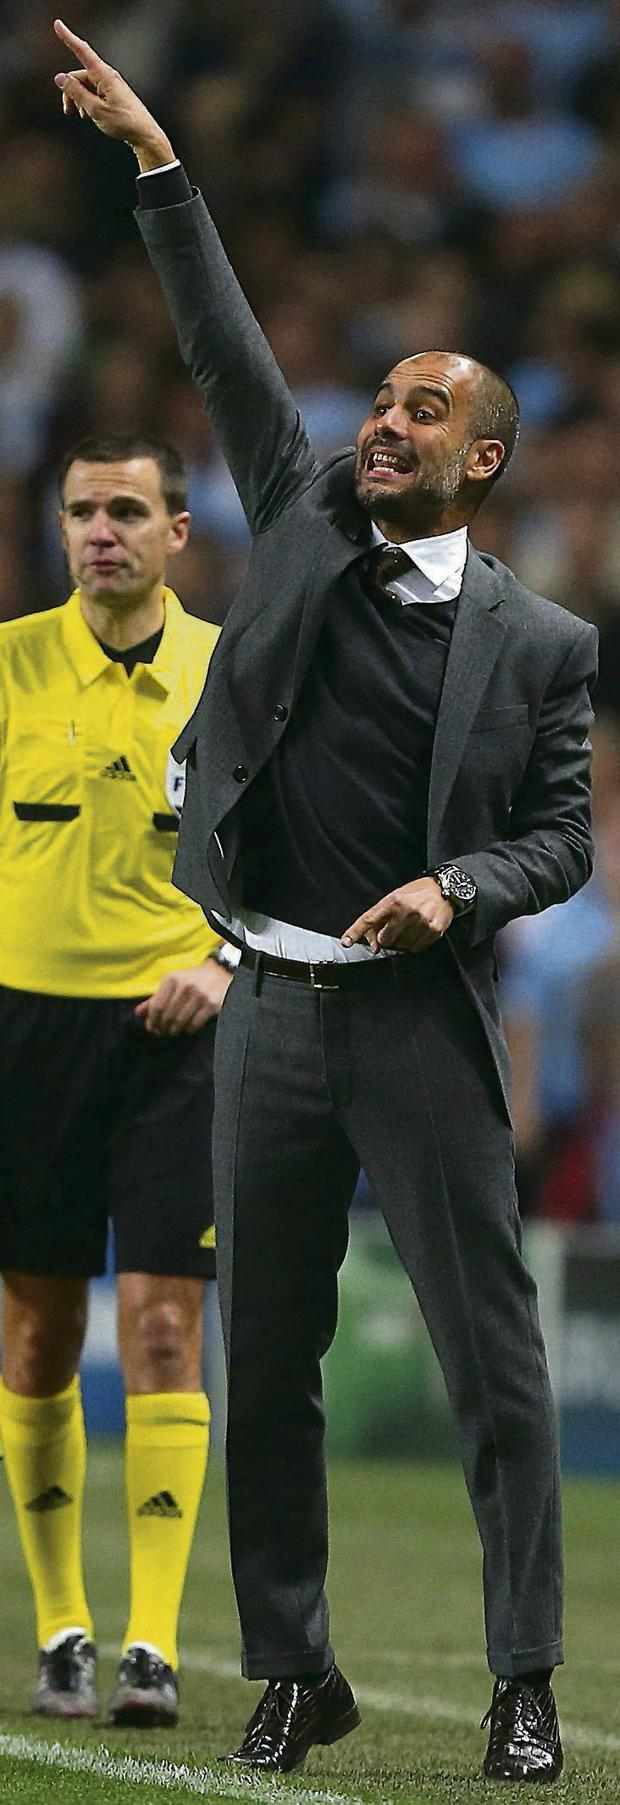 Bayern Munich manager Josep Guardiola gestures on the touchline during the UEFA Champions League match at the Etihad Stadium